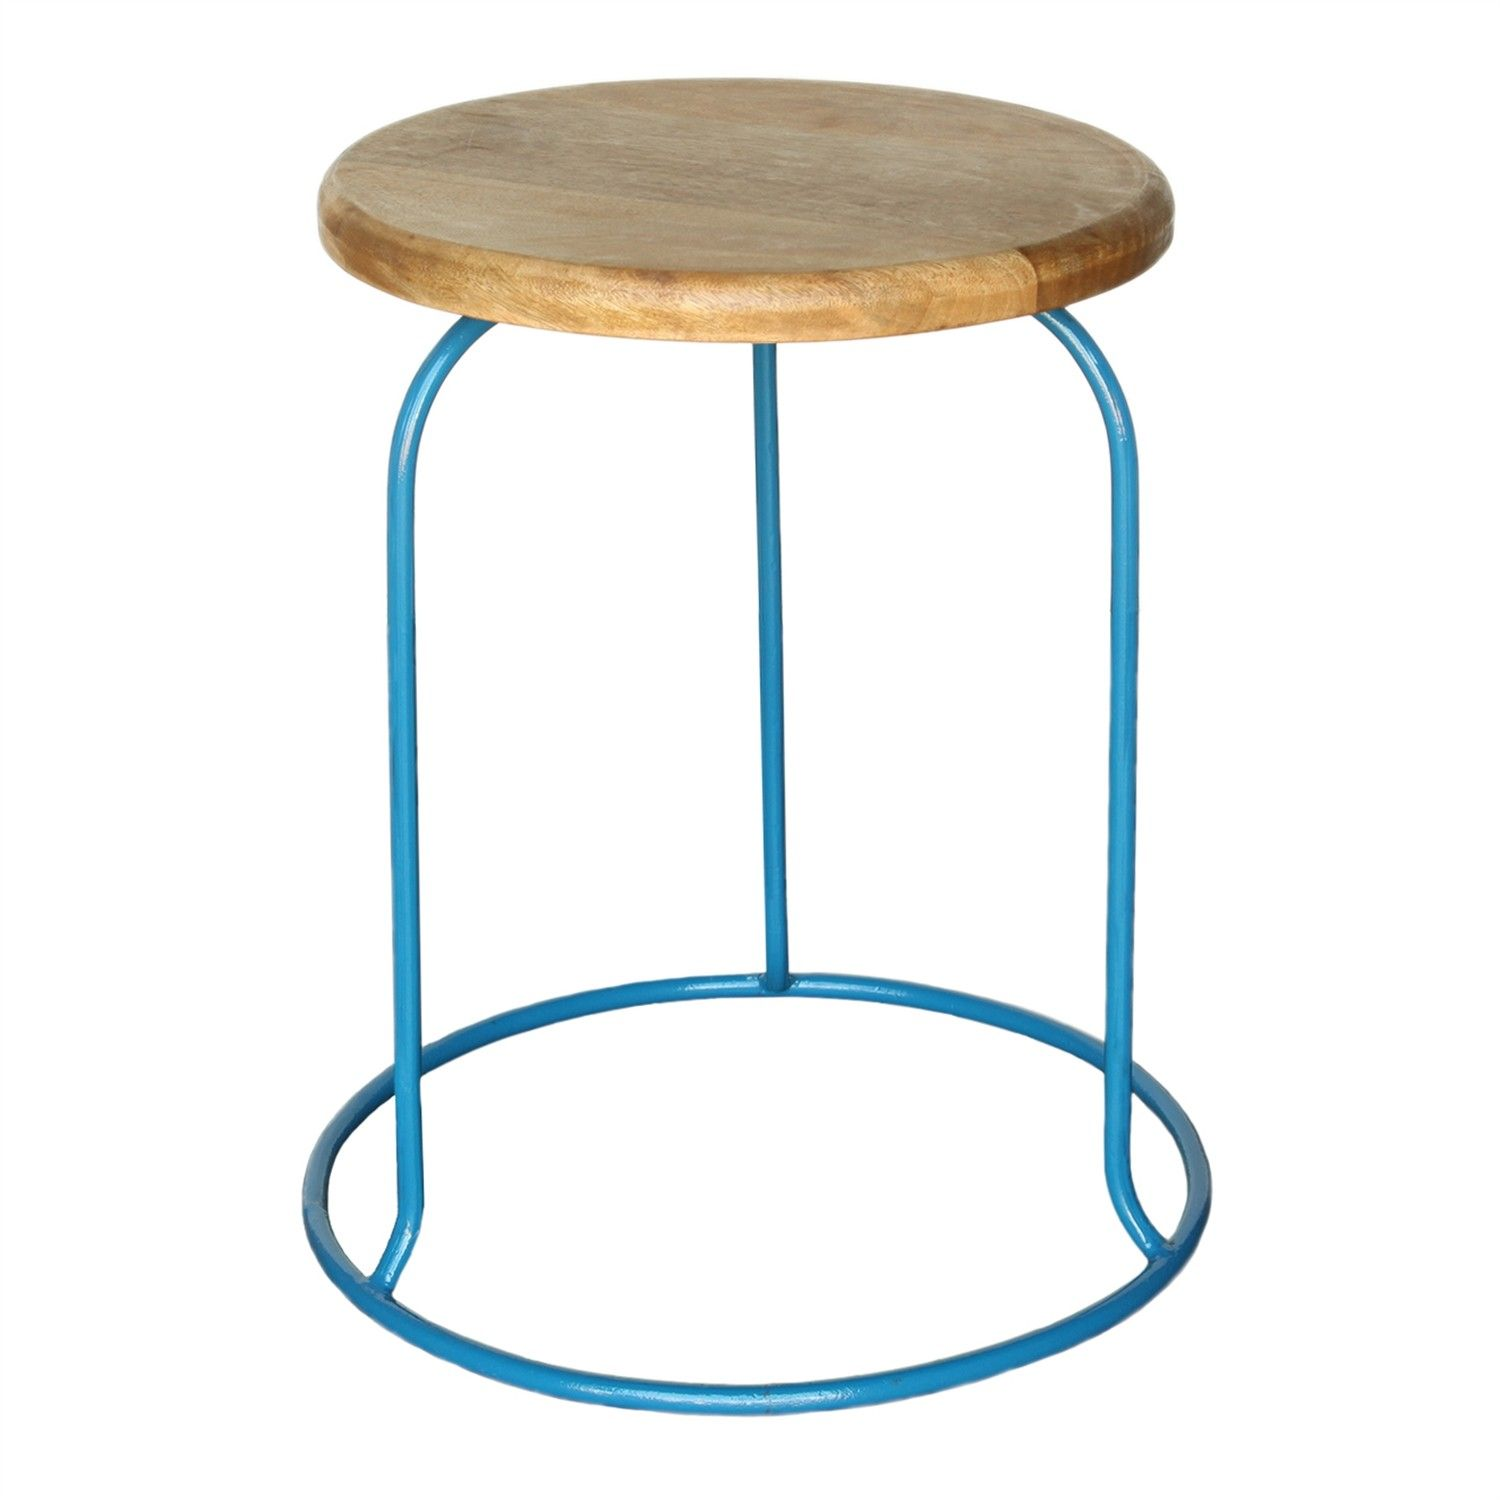 Homart+Graham+Iron+And+Wood+Stool,+Azure+ +